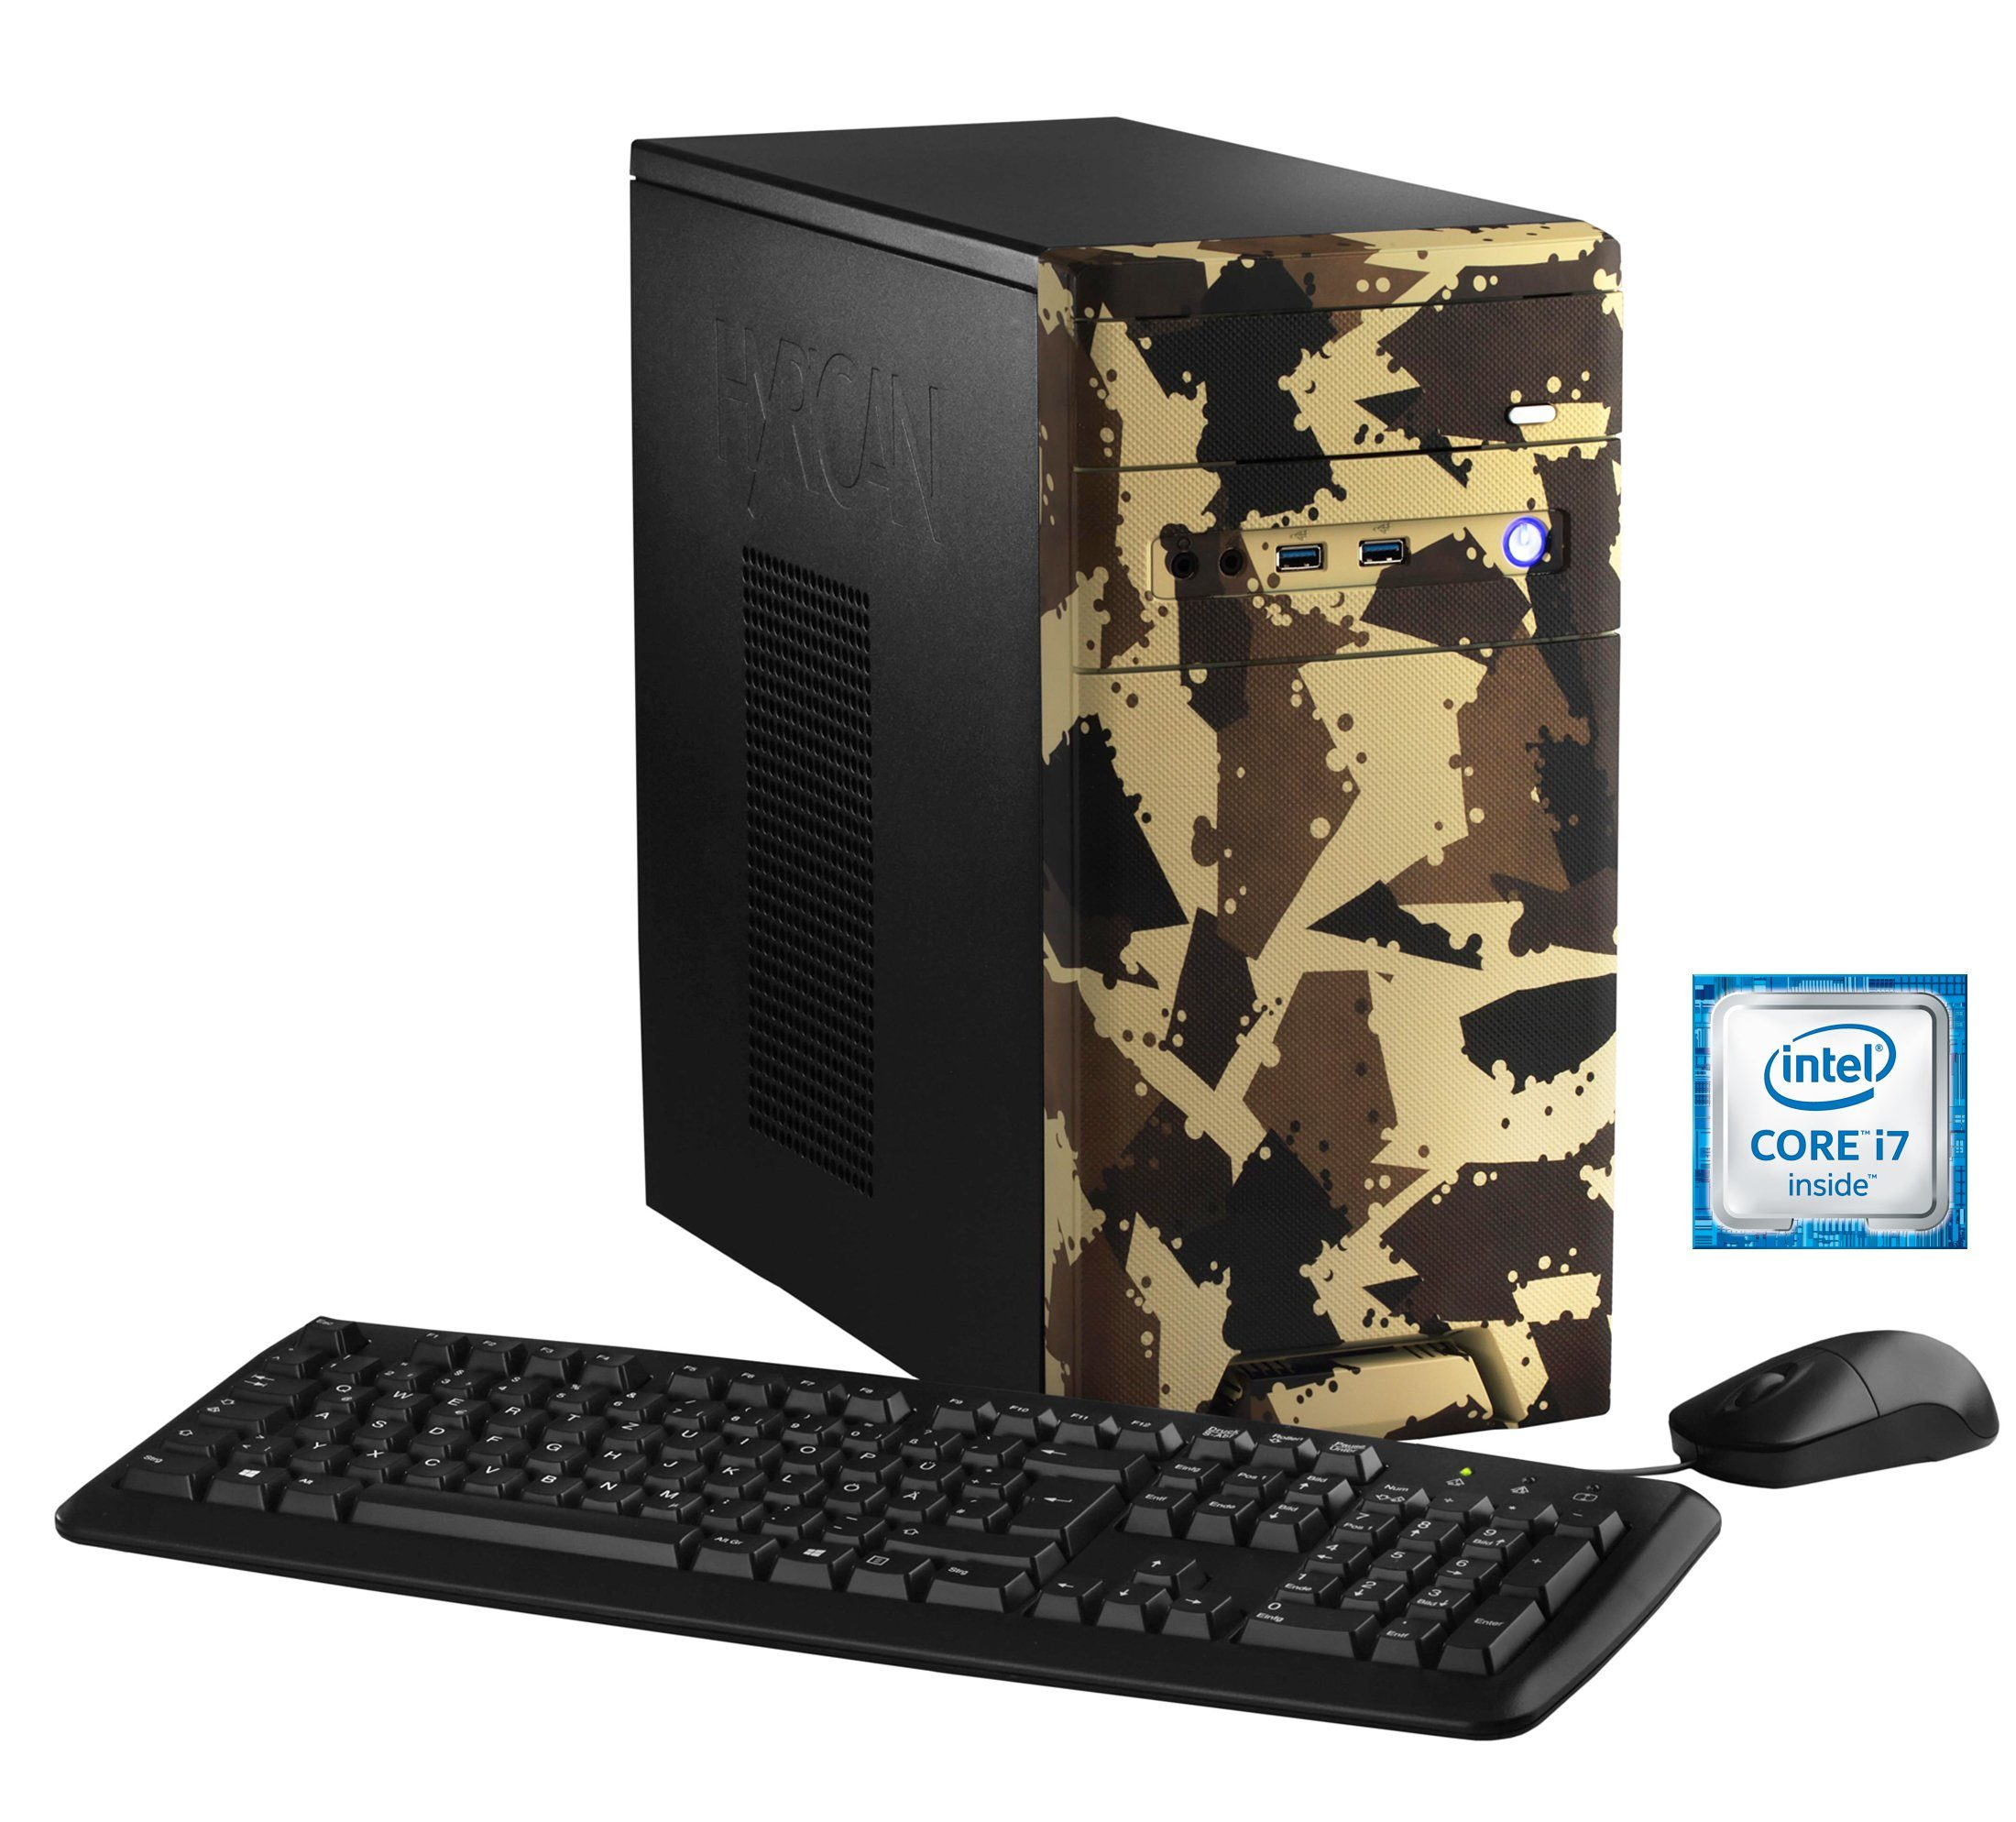 Hyrican Gaming PC Intel® i7-6700, 16GB, SSD + HDD, GeForce® GTX 1060 »CyberGamer desert 5368 «